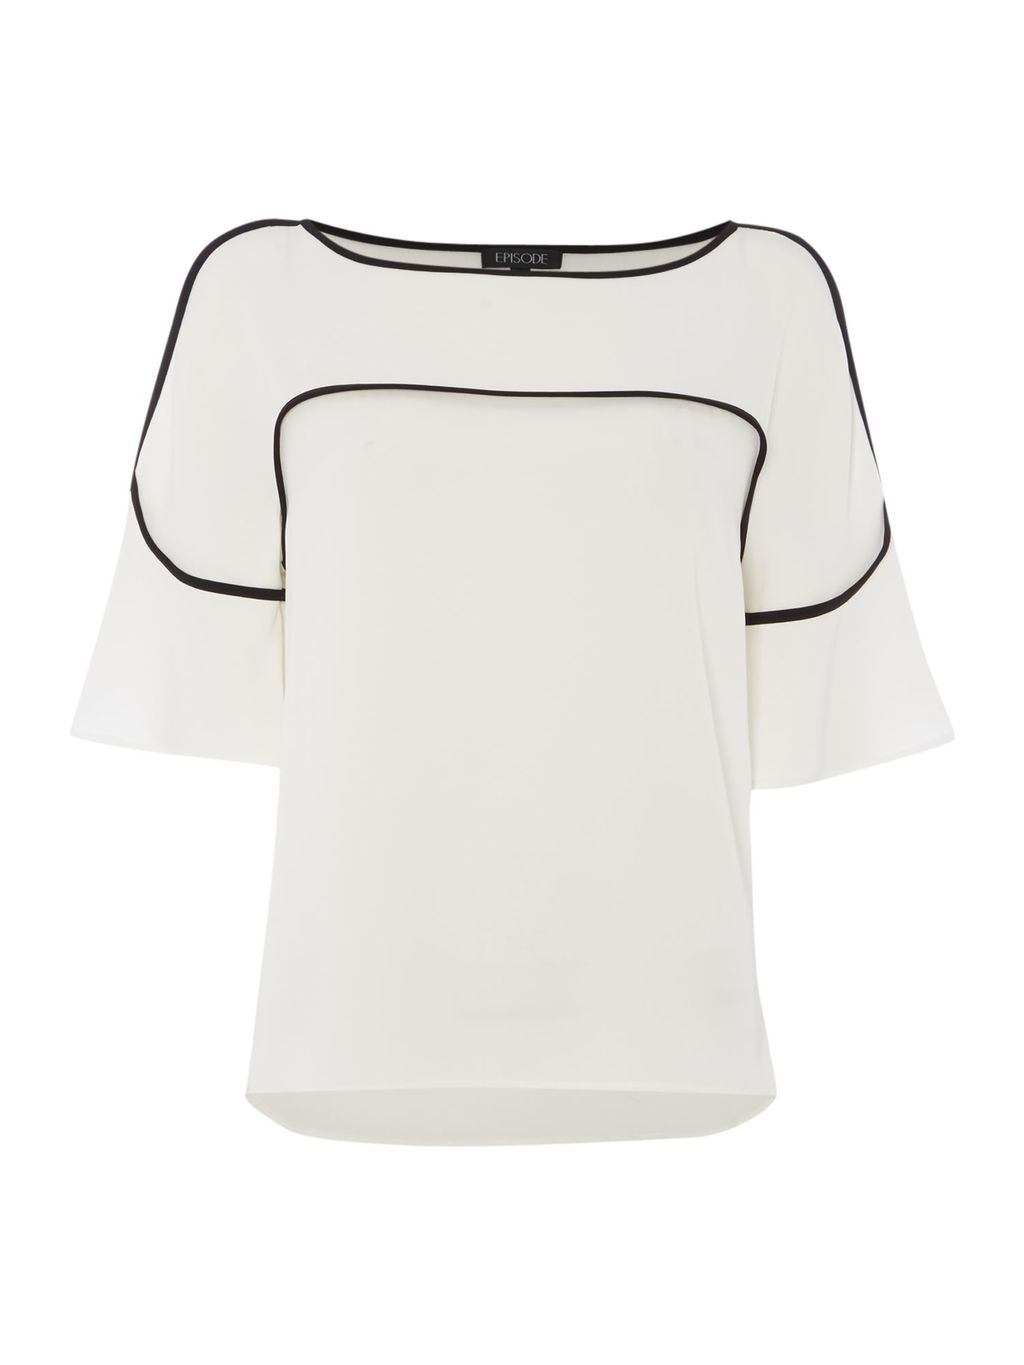 Top With Piping And Frill Sleeves, White - pattern: plain; predominant colour: white; secondary colour: black; occasions: casual; length: standard; style: top; fibres: polyester/polyamide - stretch; fit: body skimming; neckline: crew; sleeve length: half sleeve; sleeve style: standard; pattern type: fabric; texture group: other - light to midweight; multicoloured: multicoloured; wardrobe: basic; season: a/w 2016